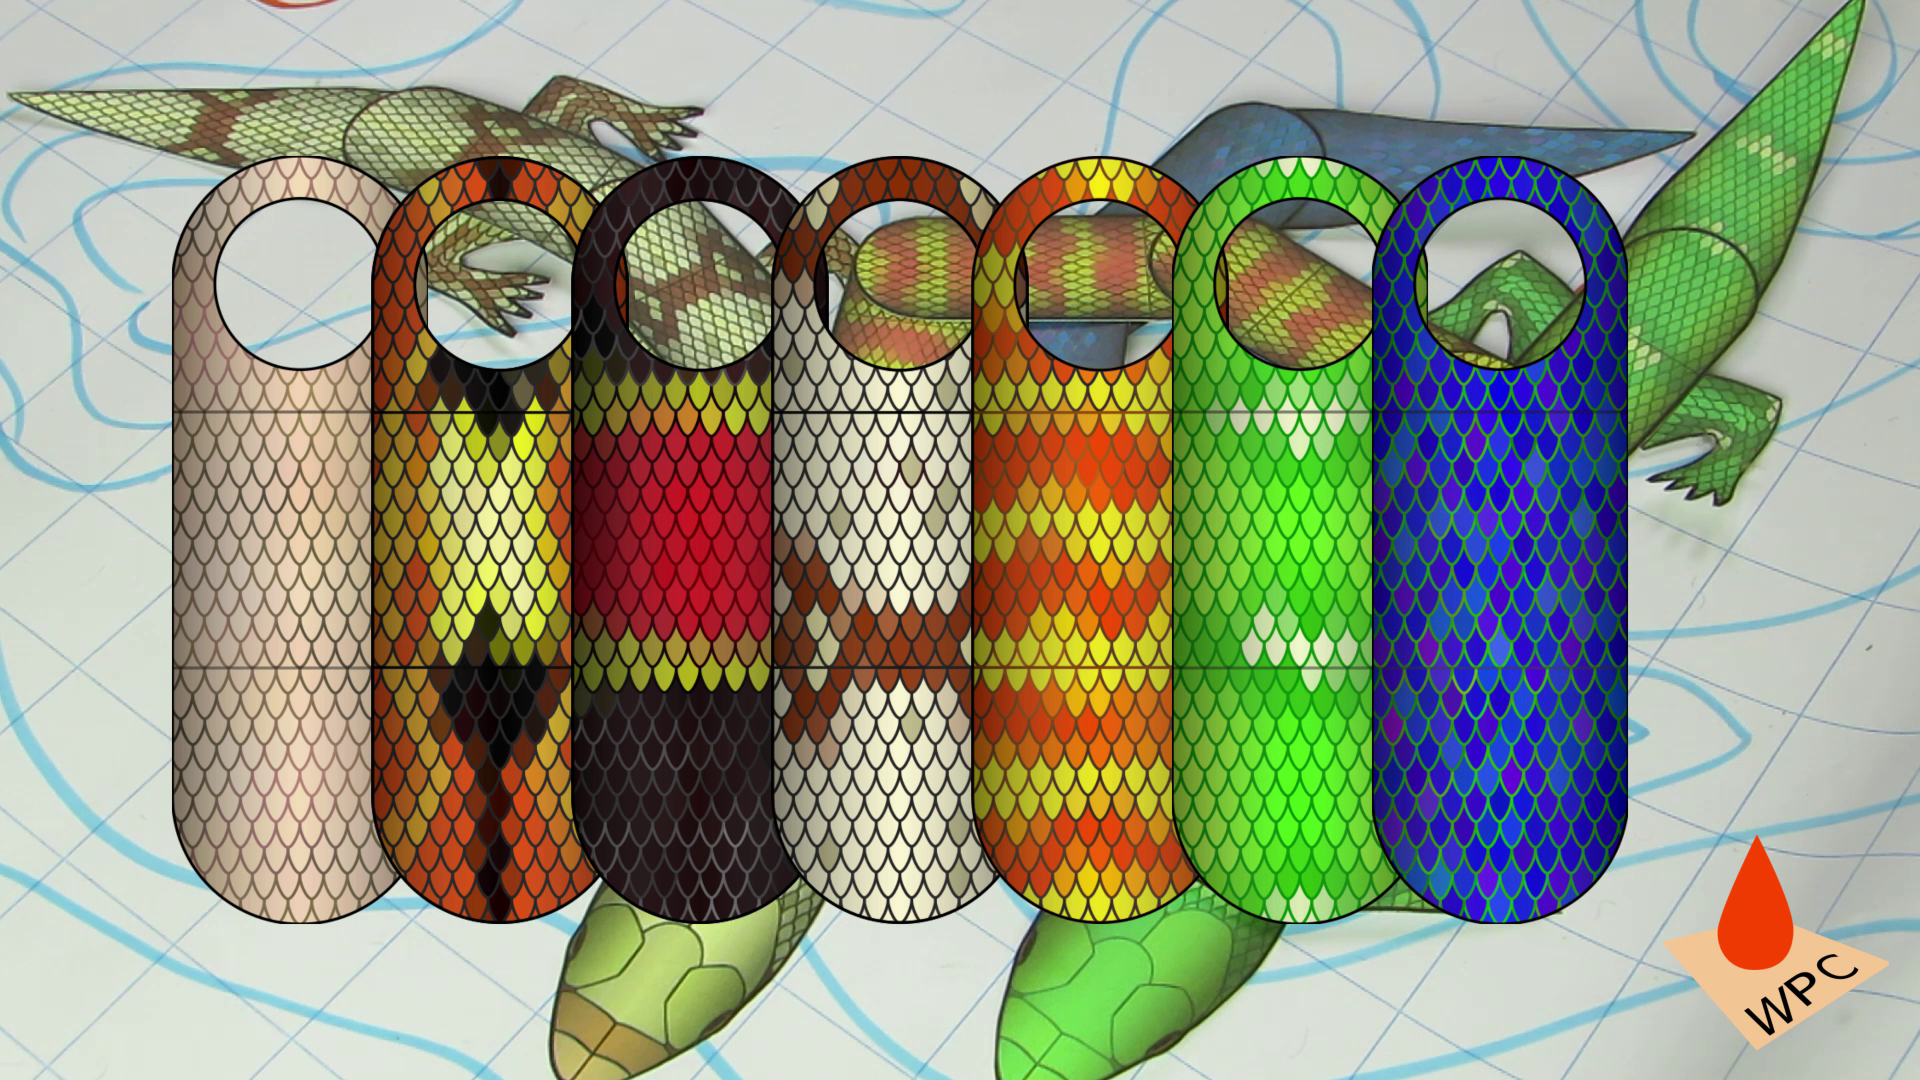 These are the different colors that you will be getting snakes and lizard parts in!